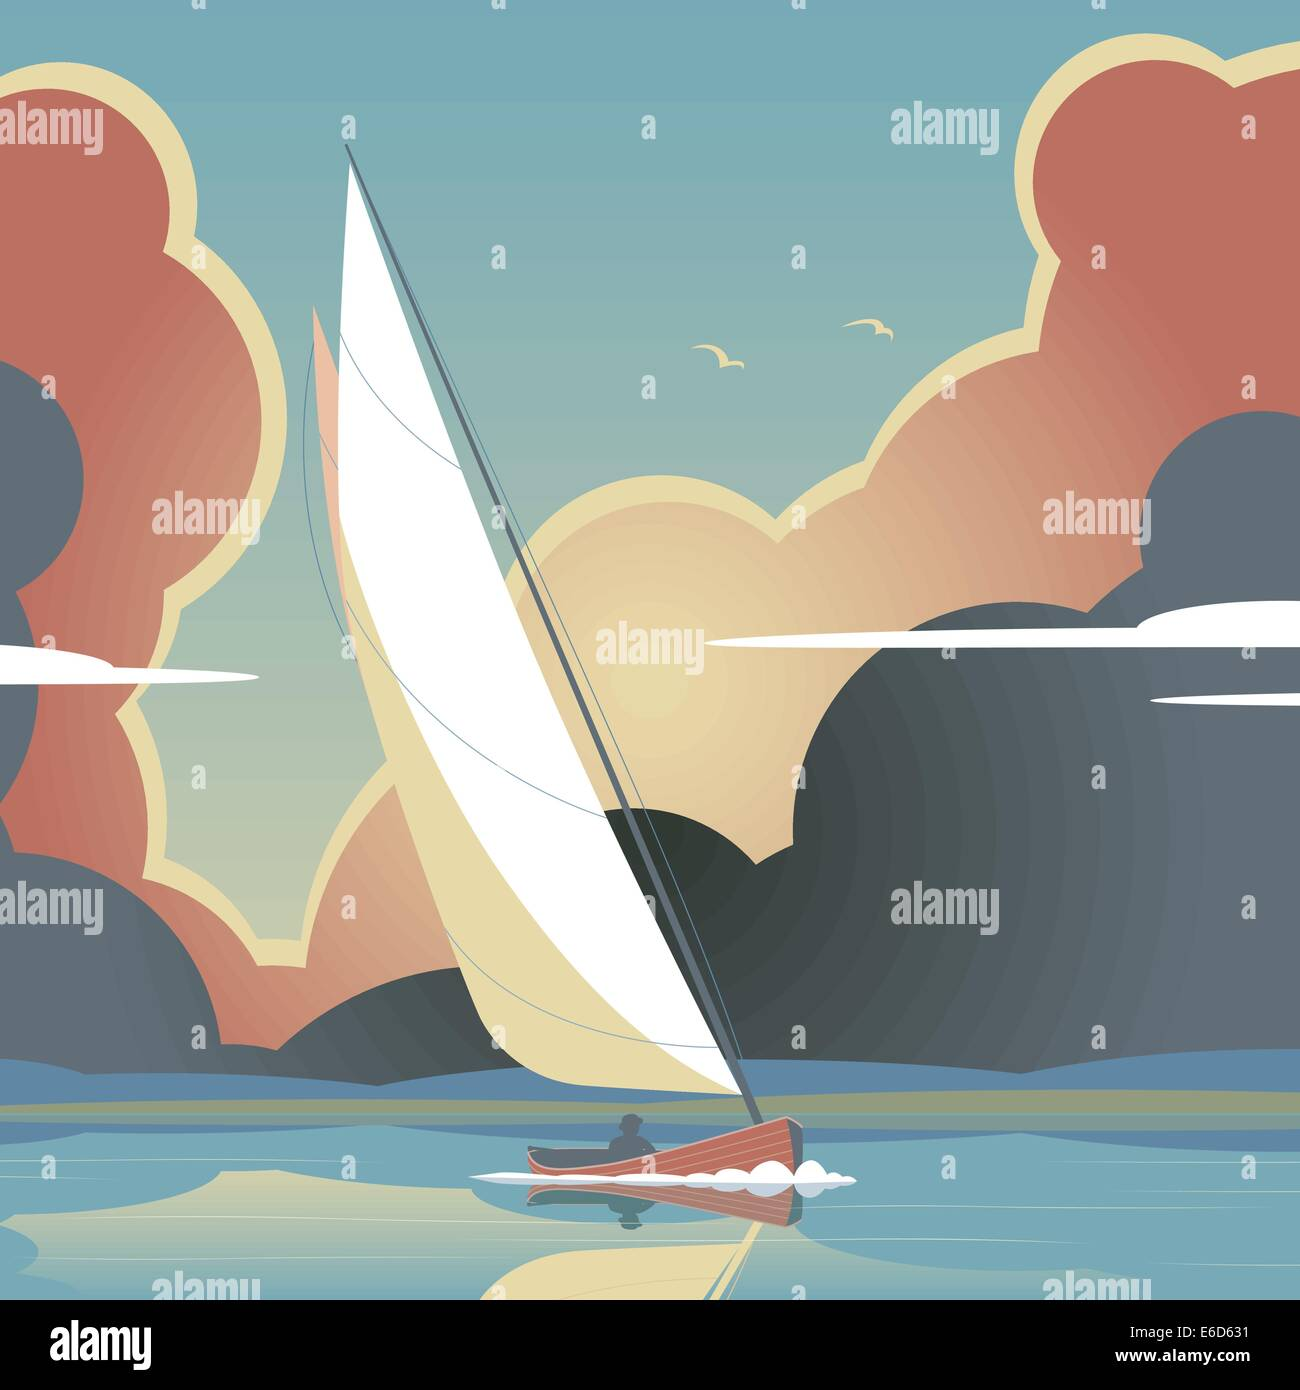 Illustration vectorielle modifiable d'un homme d'un yacht à voile sur l'eau calme Illustration de Vecteur